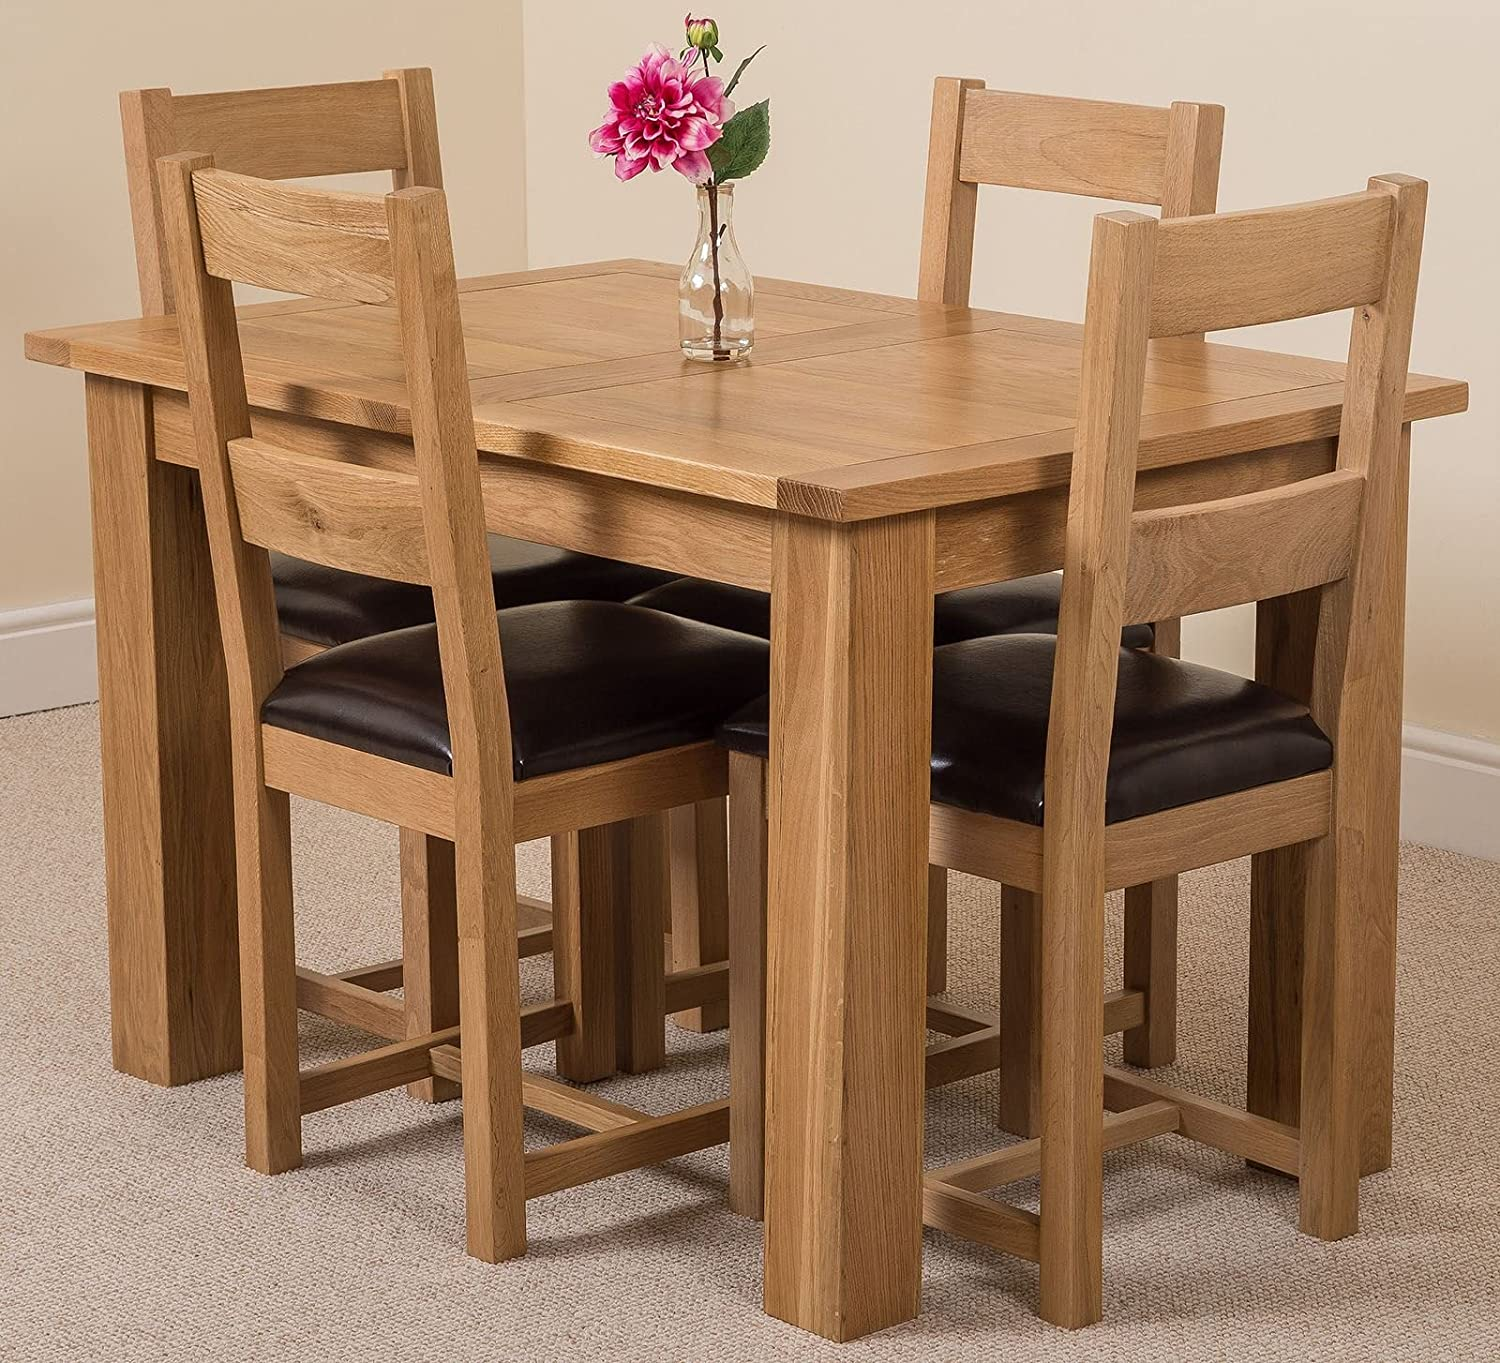 oak dining room sets. Hampton Solid Oak (120 - 160 Cm) Extending Dining Table \u0026 4 Lincoln Chairs: Amazon.co.uk: Kitchen Home Room Sets K